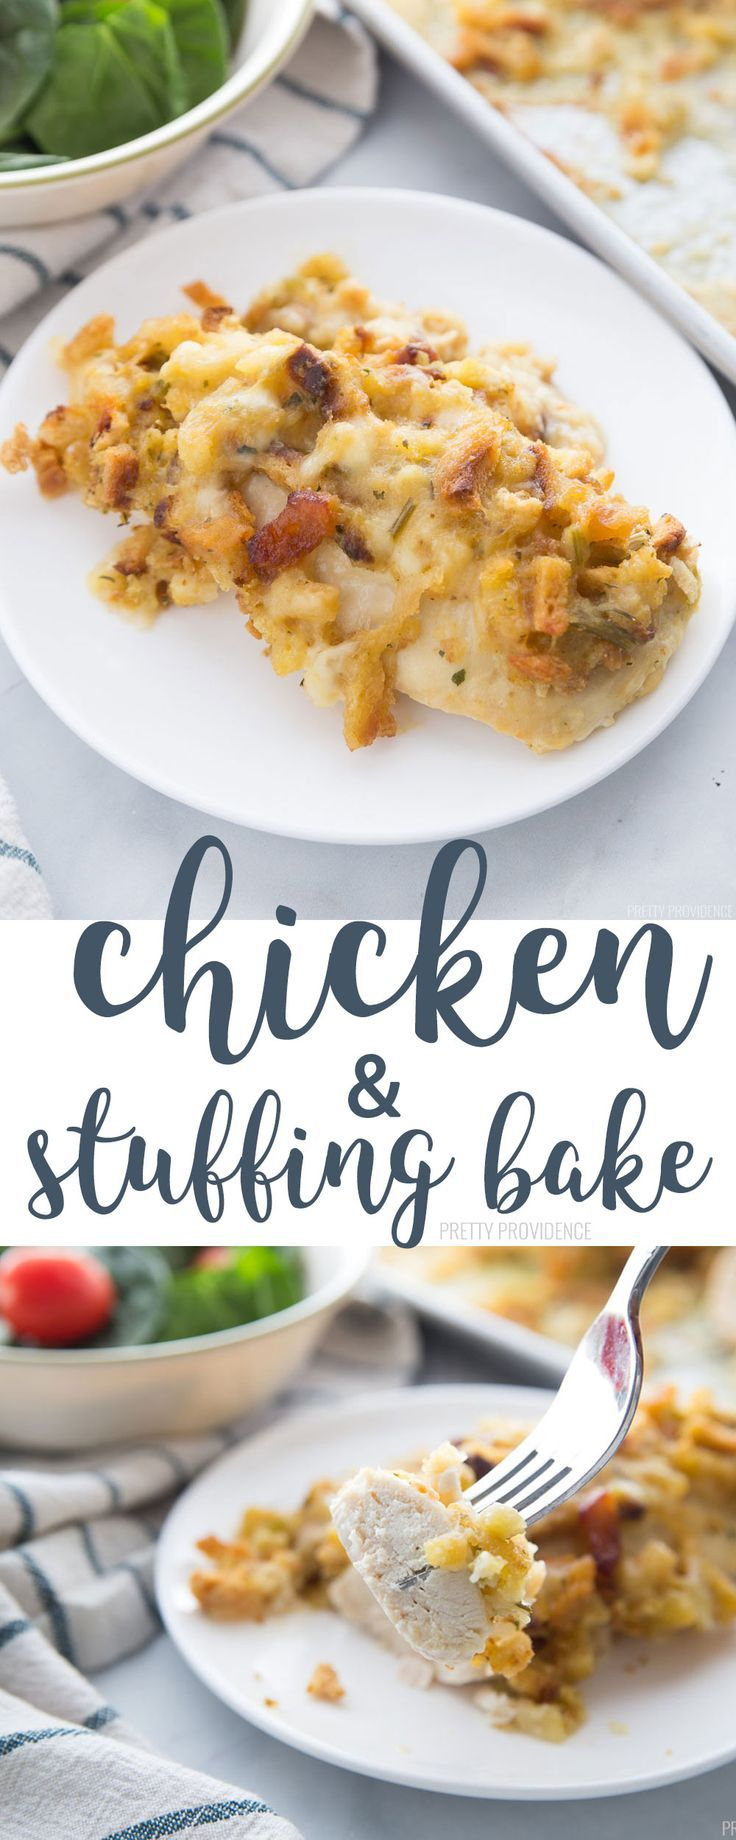 Chicken Stuffing Bake images